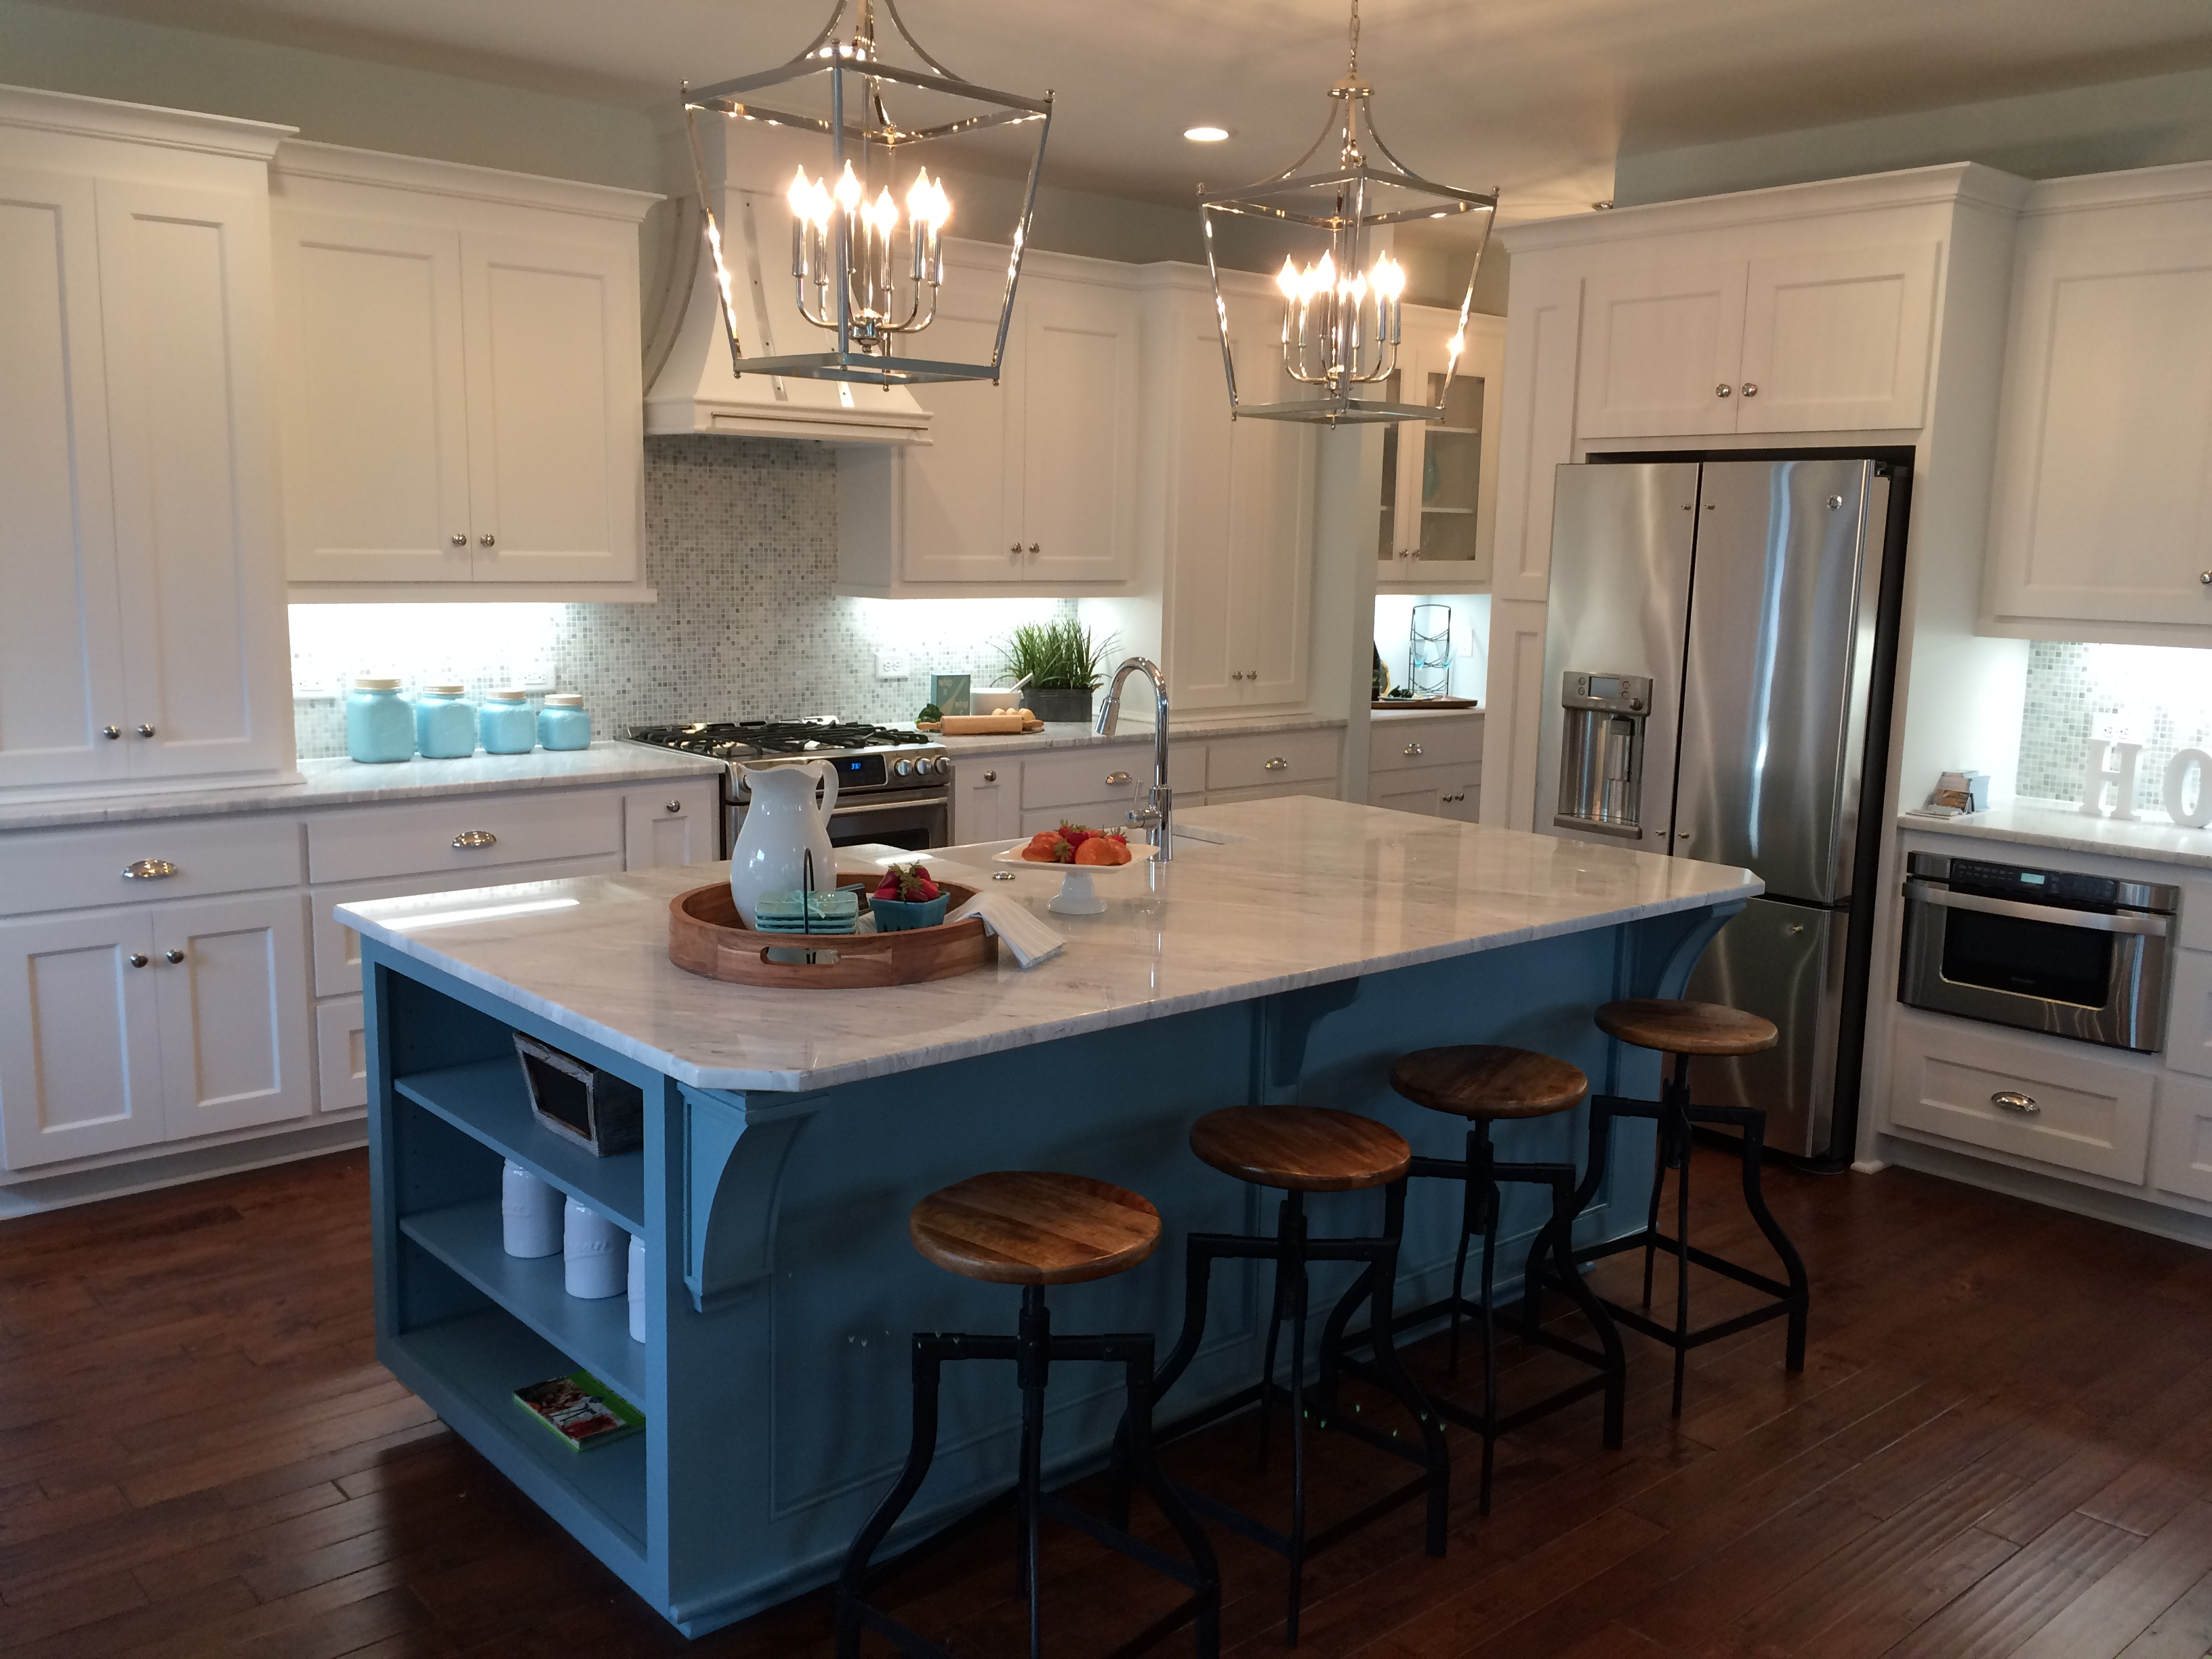 Founders Pointe TV mercial Helps to Promote the Parade of Homes